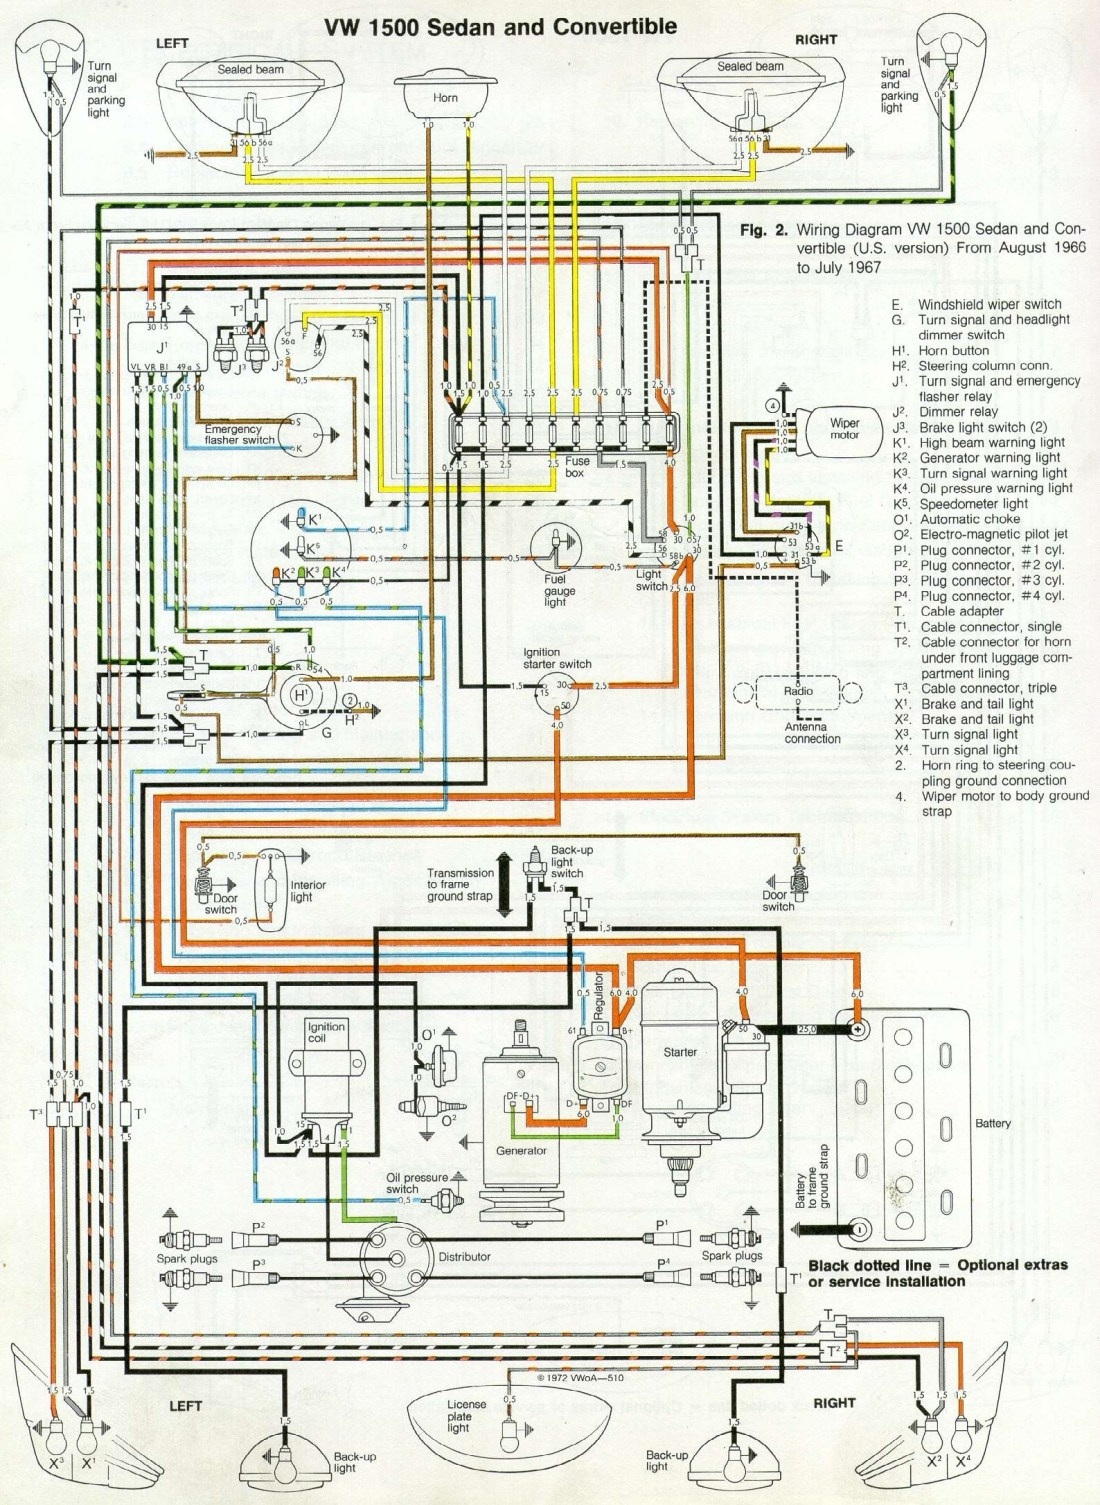 I've received 4 emails in the last 2 weeks asking for the correct wiring  diagram for both a '66 and '67 Beetle. Illustrated below is the VW 1500  sedan and ...